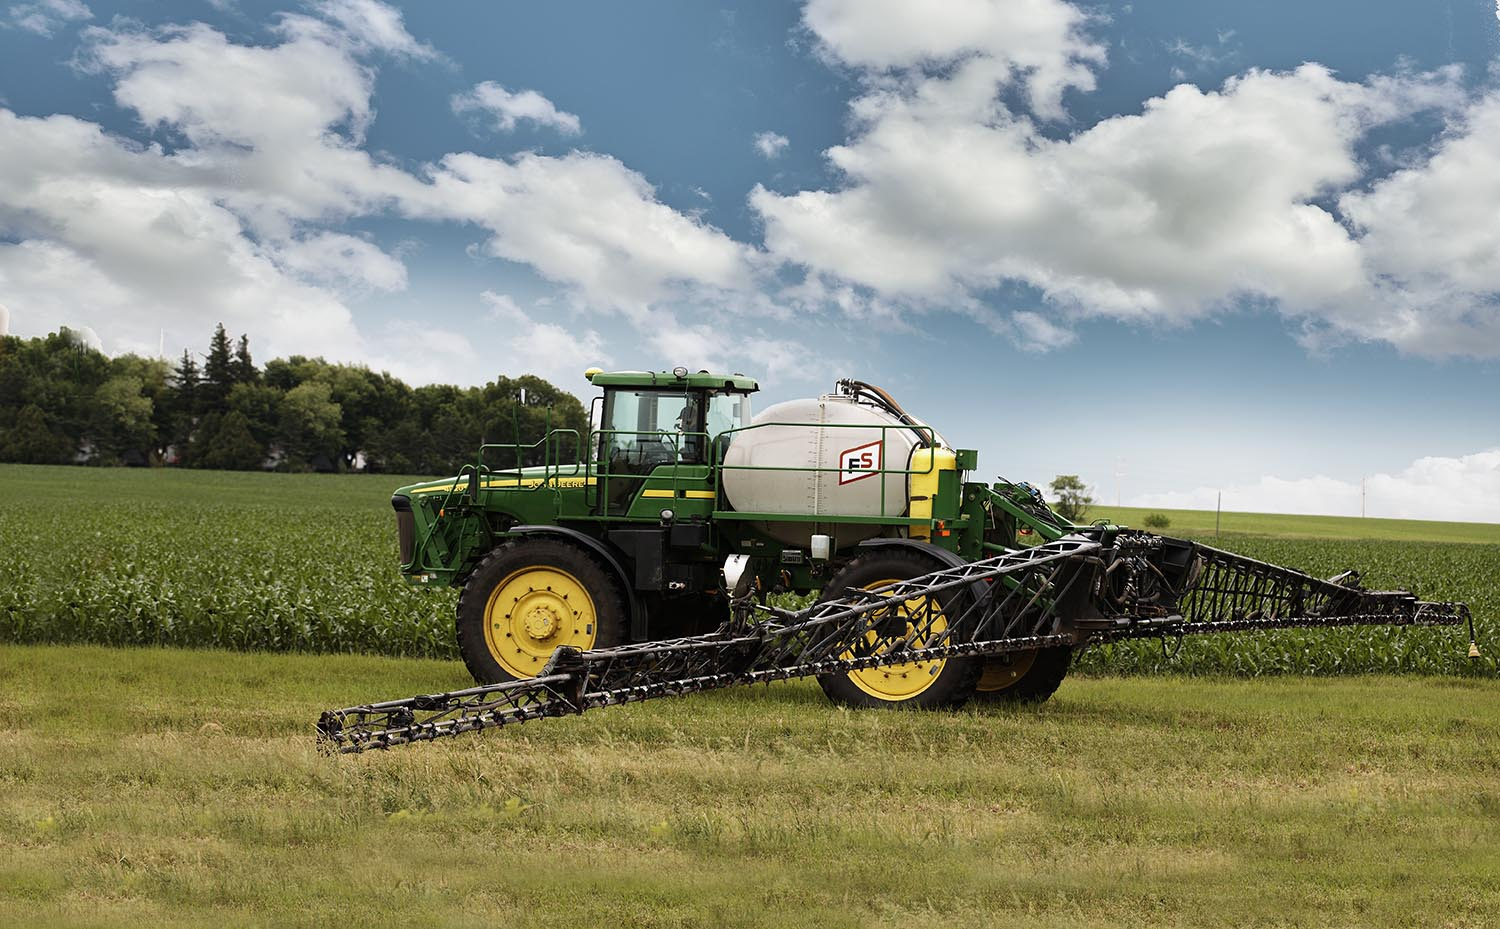 DIY Crop Spraying – Is it worth the risk?